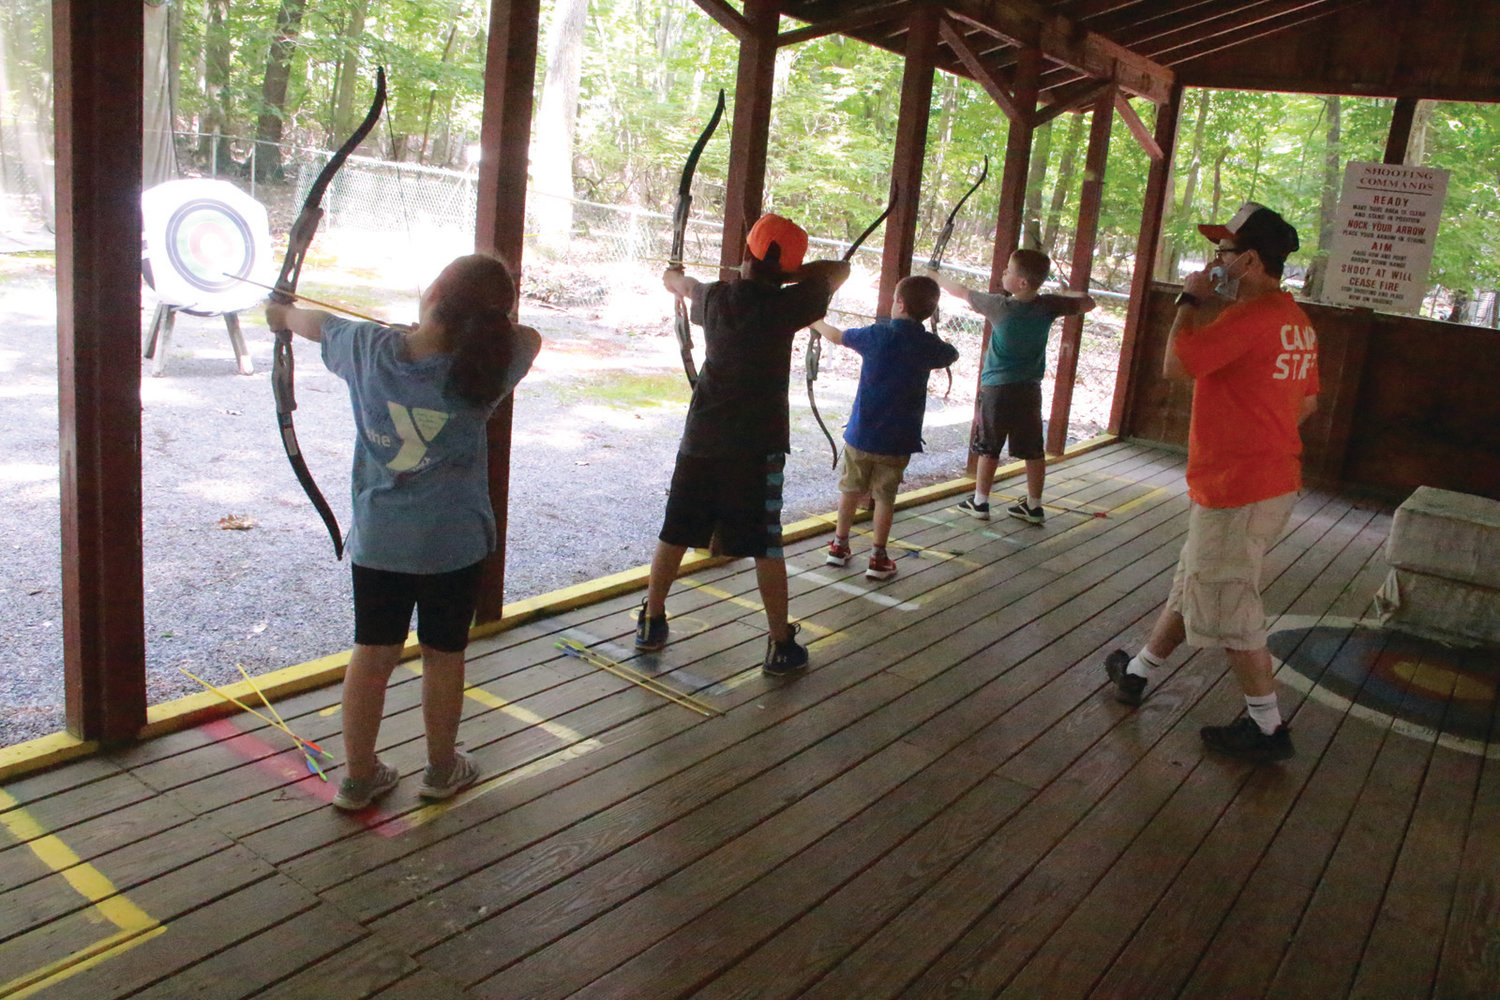 STRAIGHT SHOOTERS: YMCA summer campers take aim at the targets on the first day of camp held Monday.